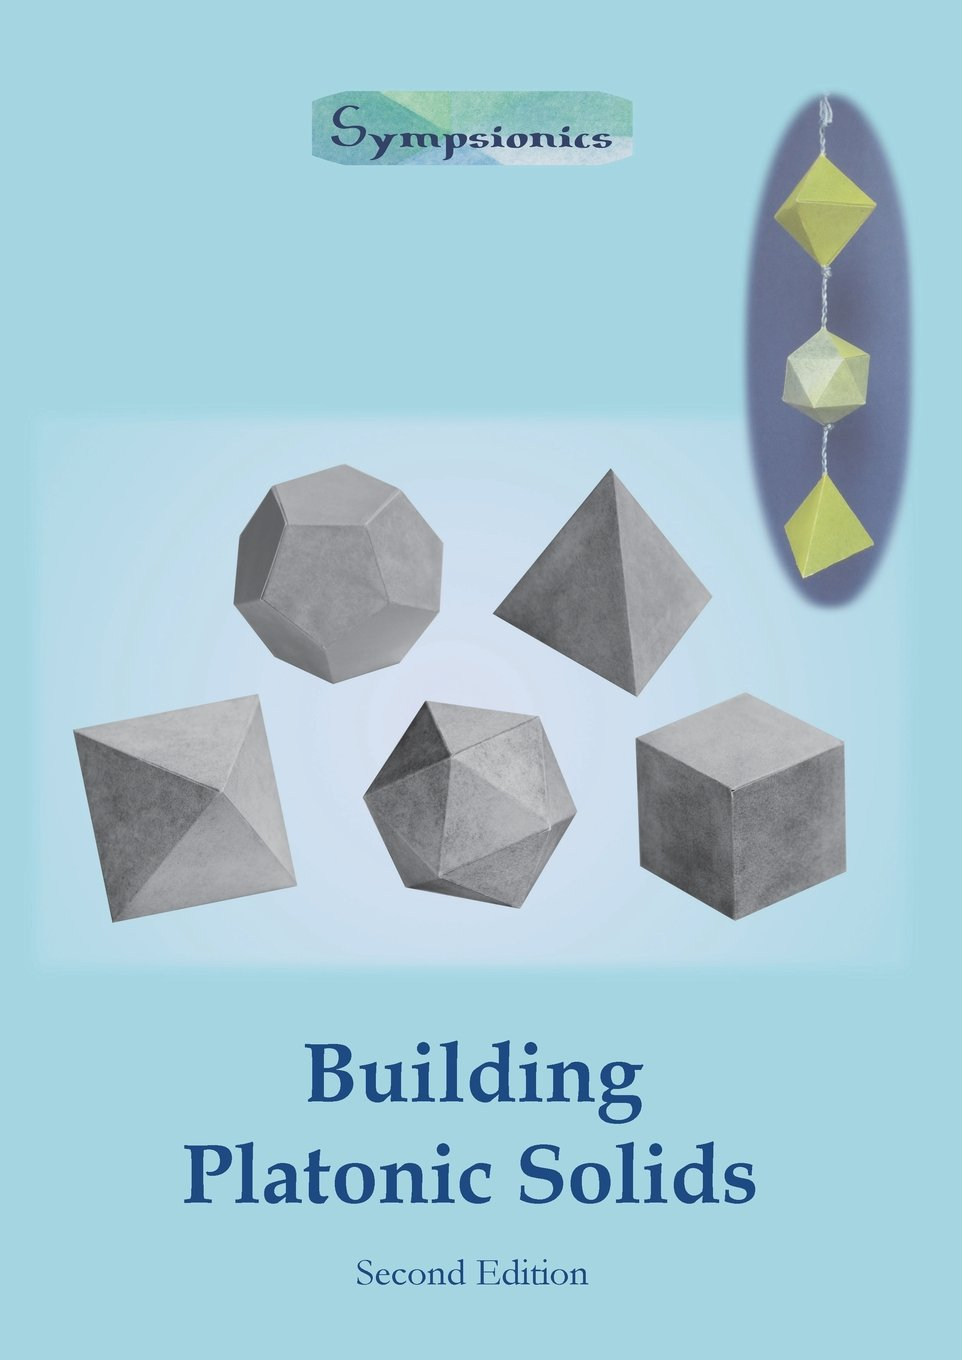 Building Platonic Solids How To Construct Sturdy Platonic Solids